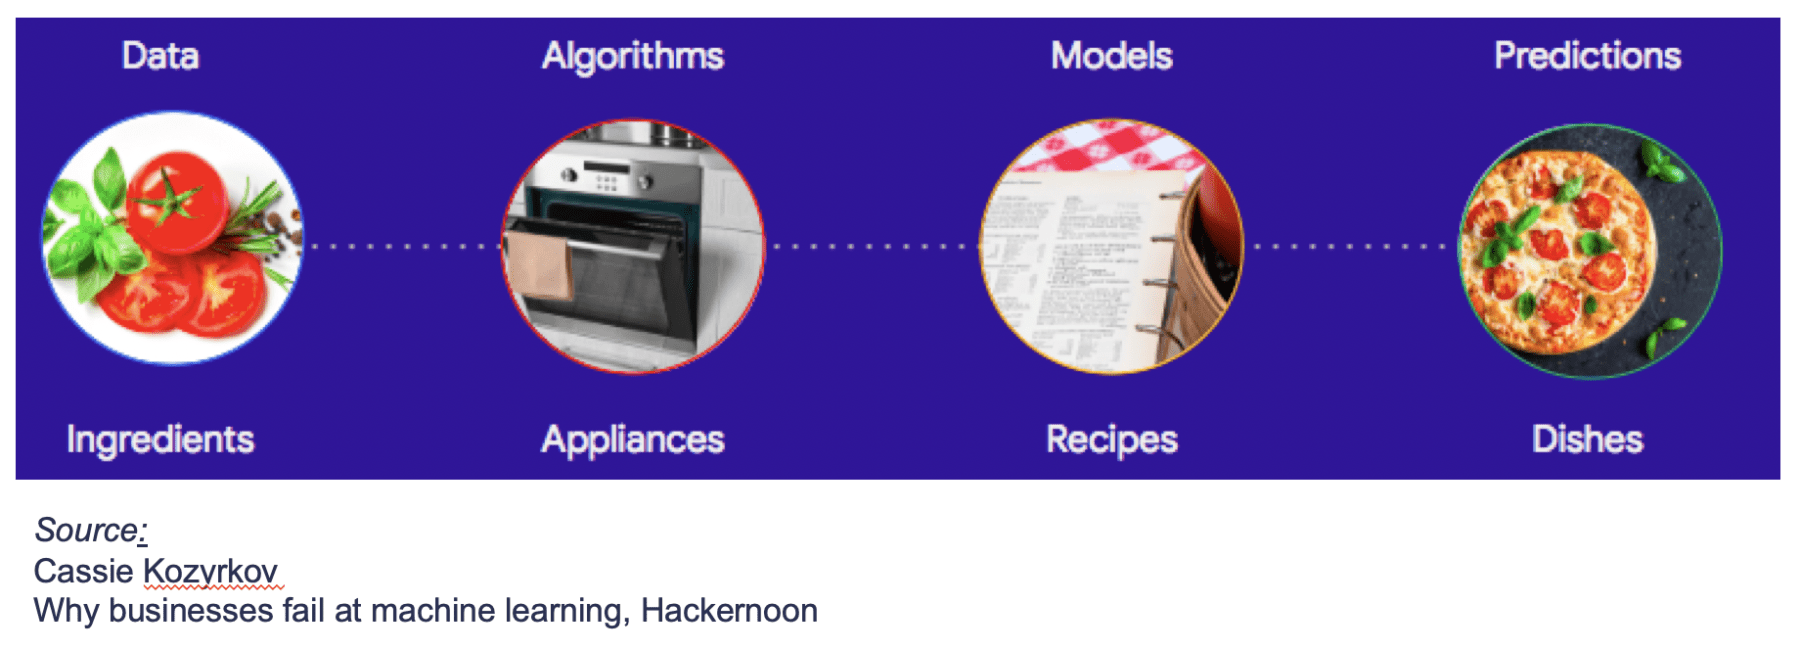 Pizza analogy that describes the four elements required for data science: data/ingredients, algorithms/appliances, models/recipes and predictions/pizzas.